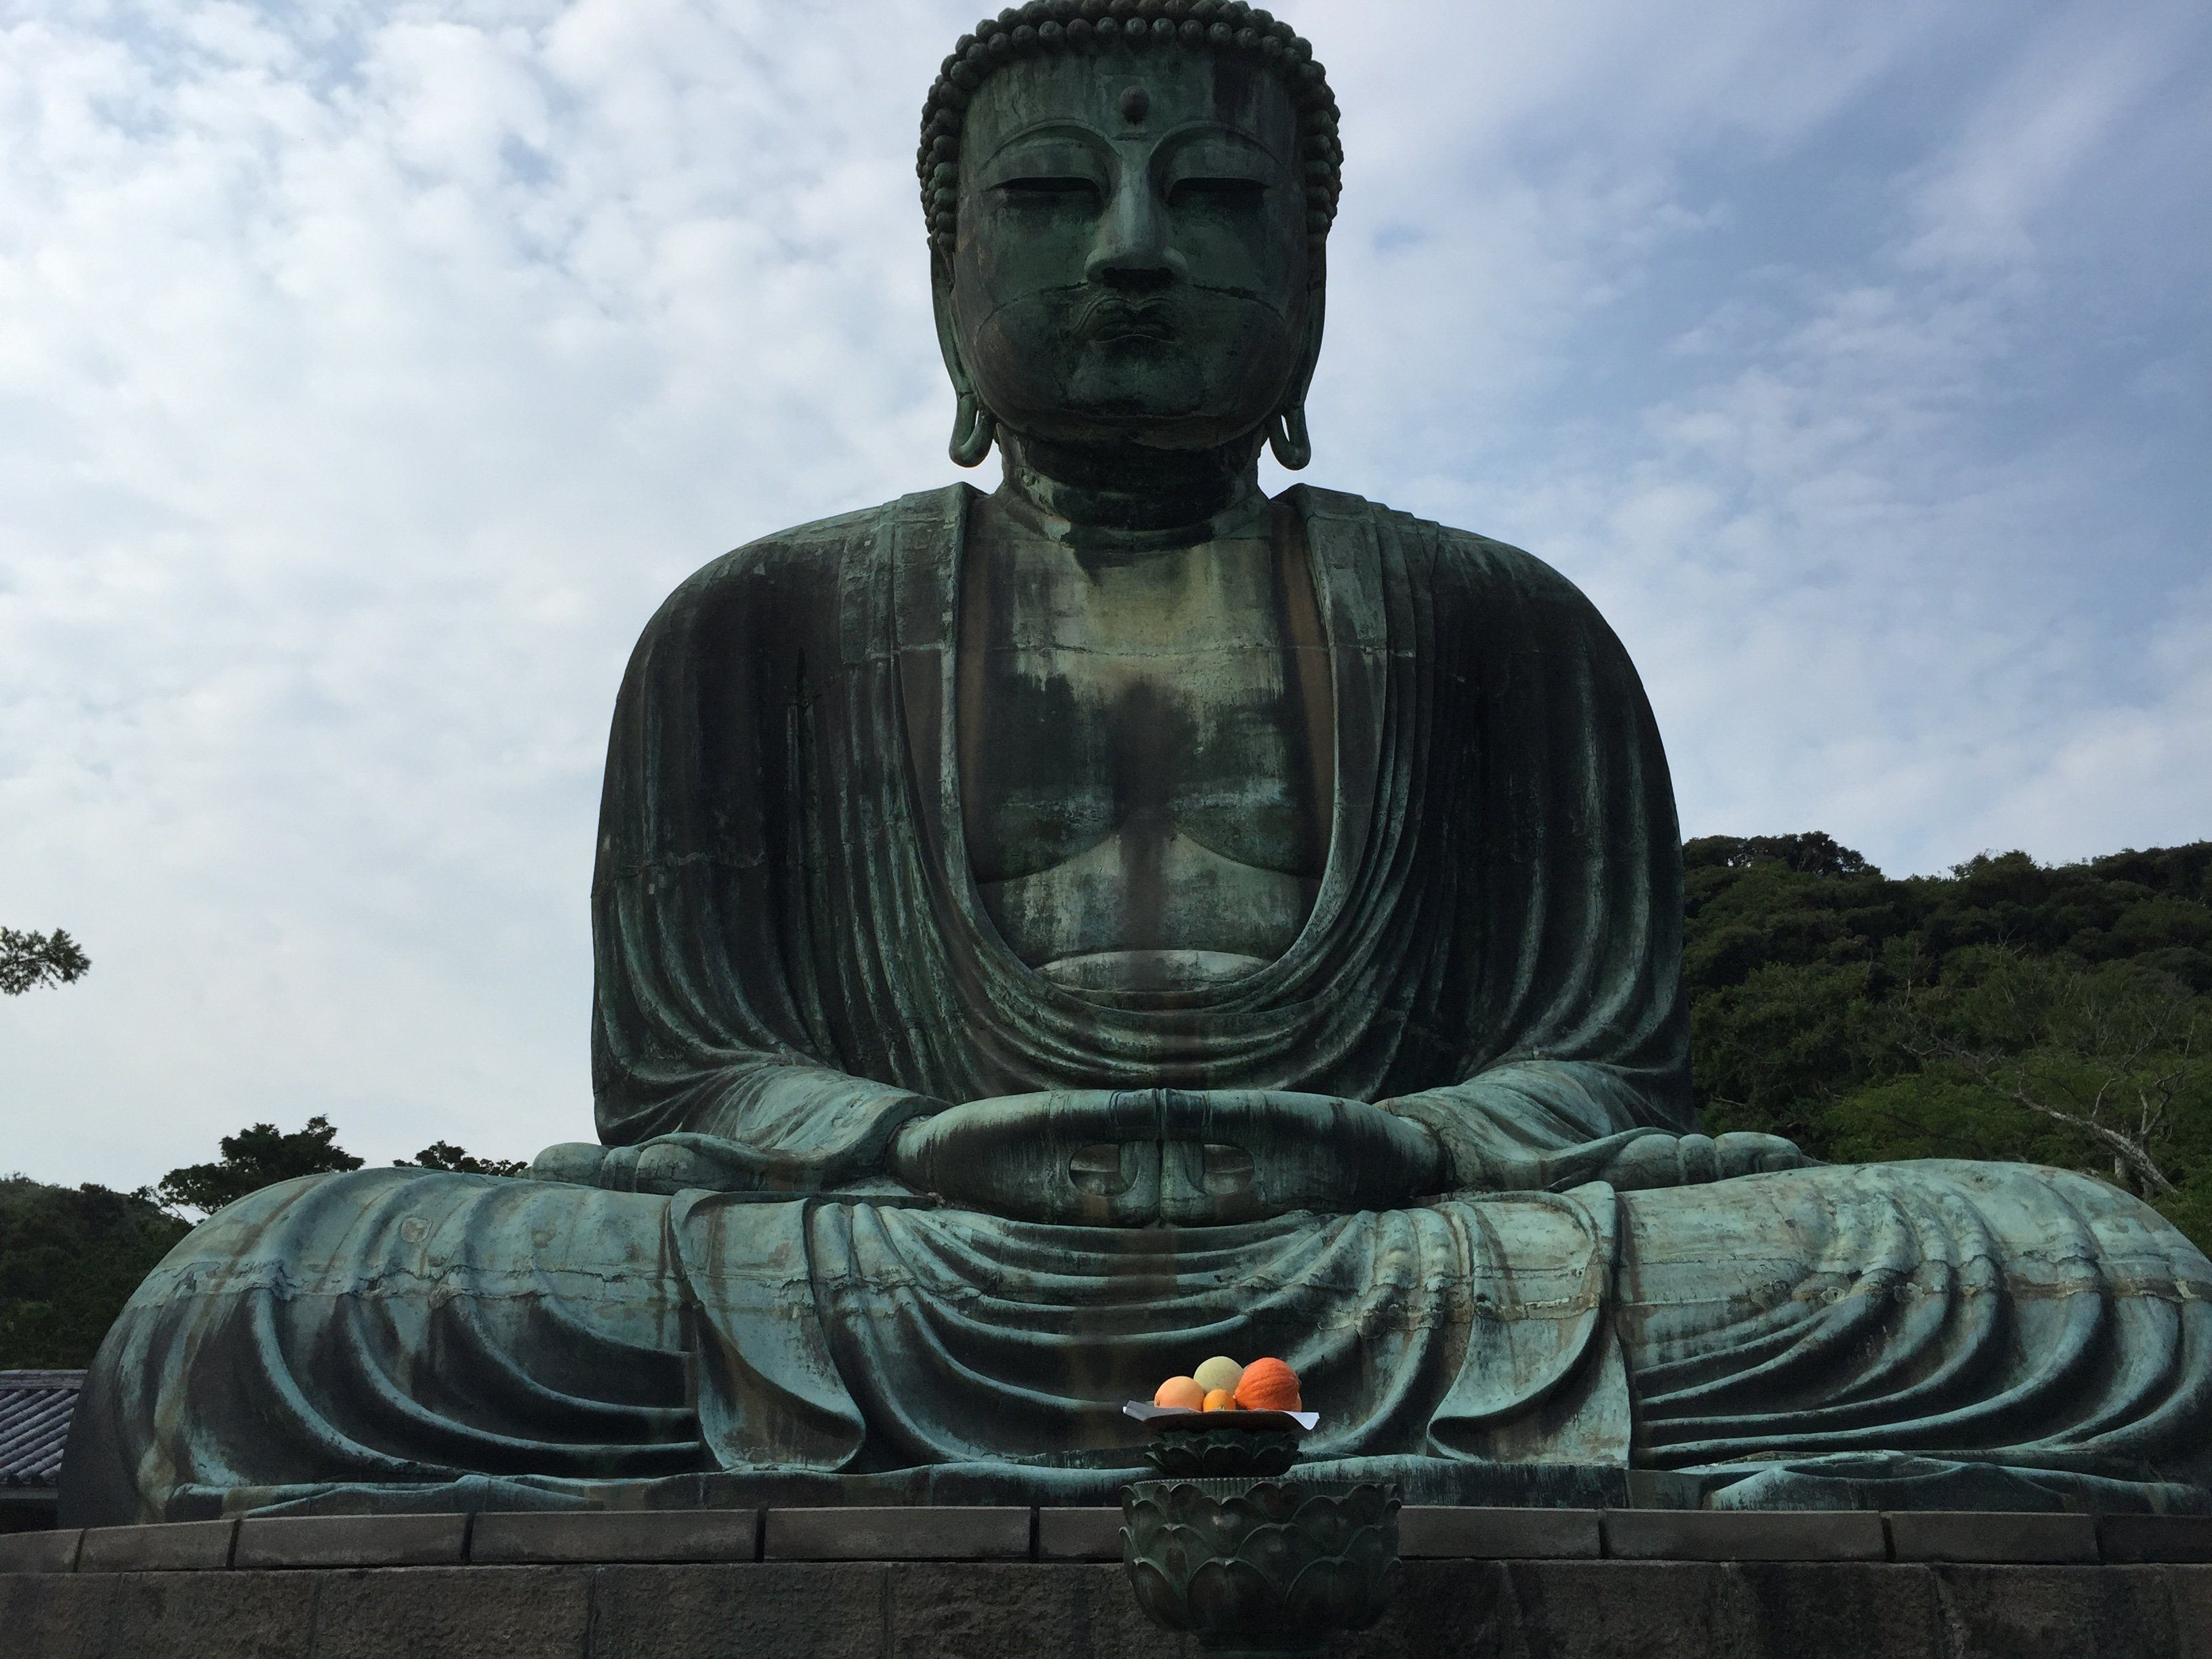 How Long Should You Stay In Japan - The Great Buddha, Kotoku-in, Kamakura, Kanagawa, Japan